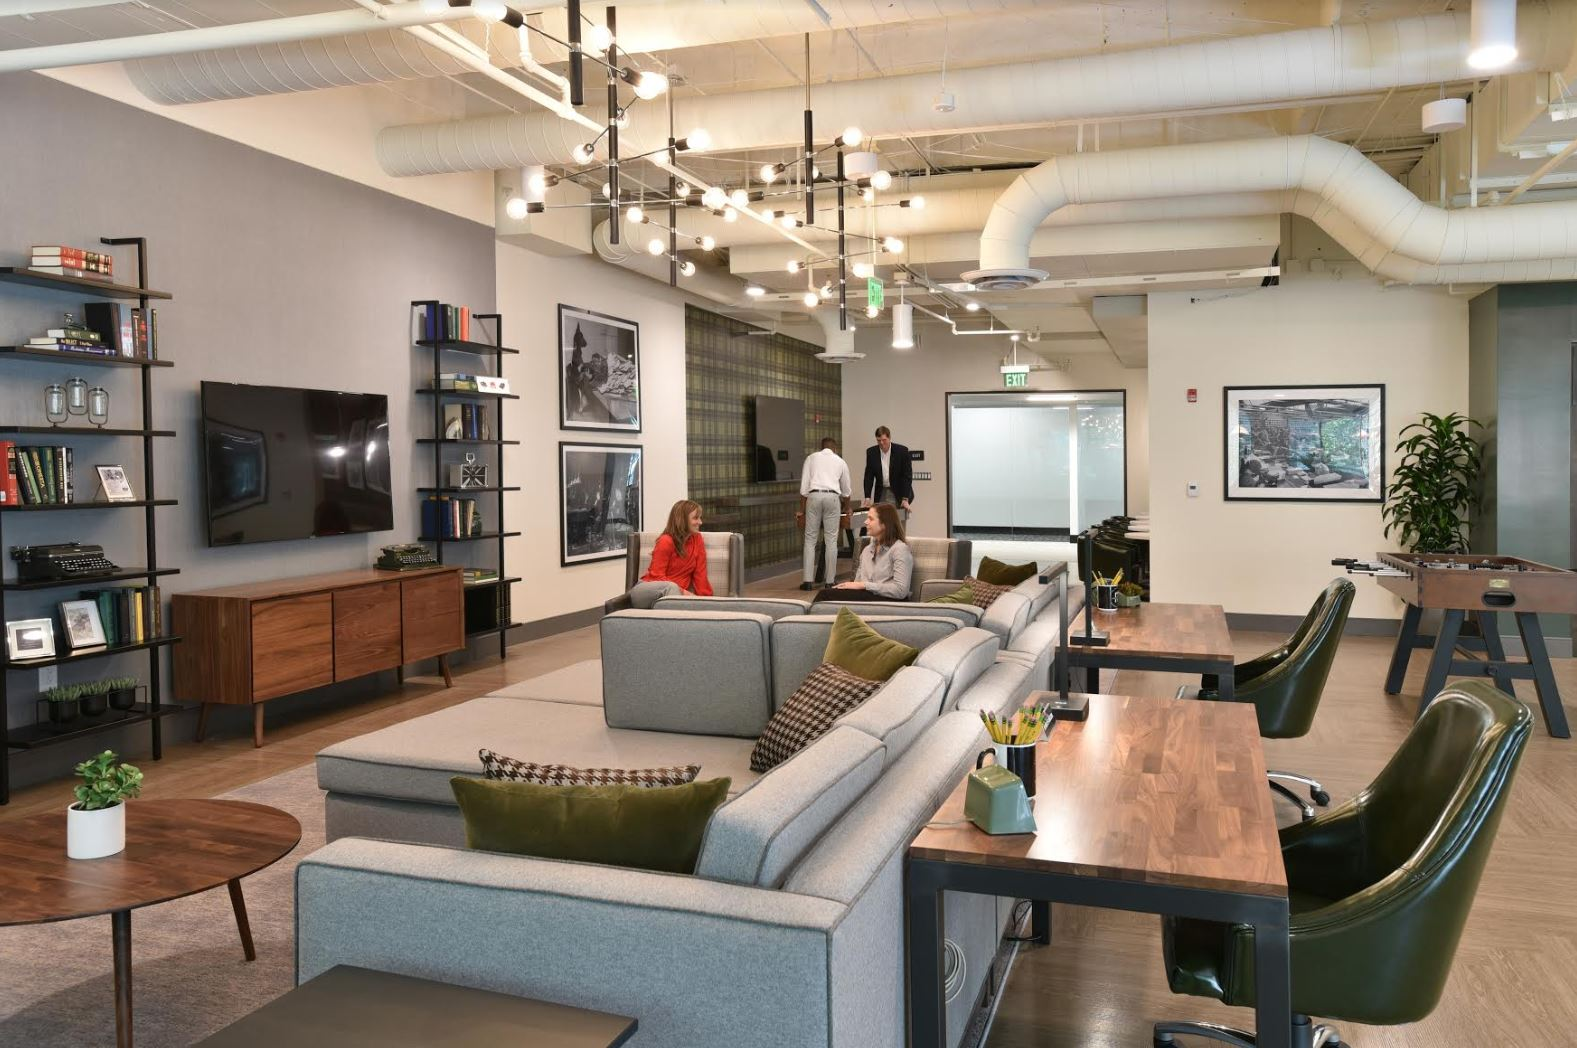 Office building design trend: Lounges